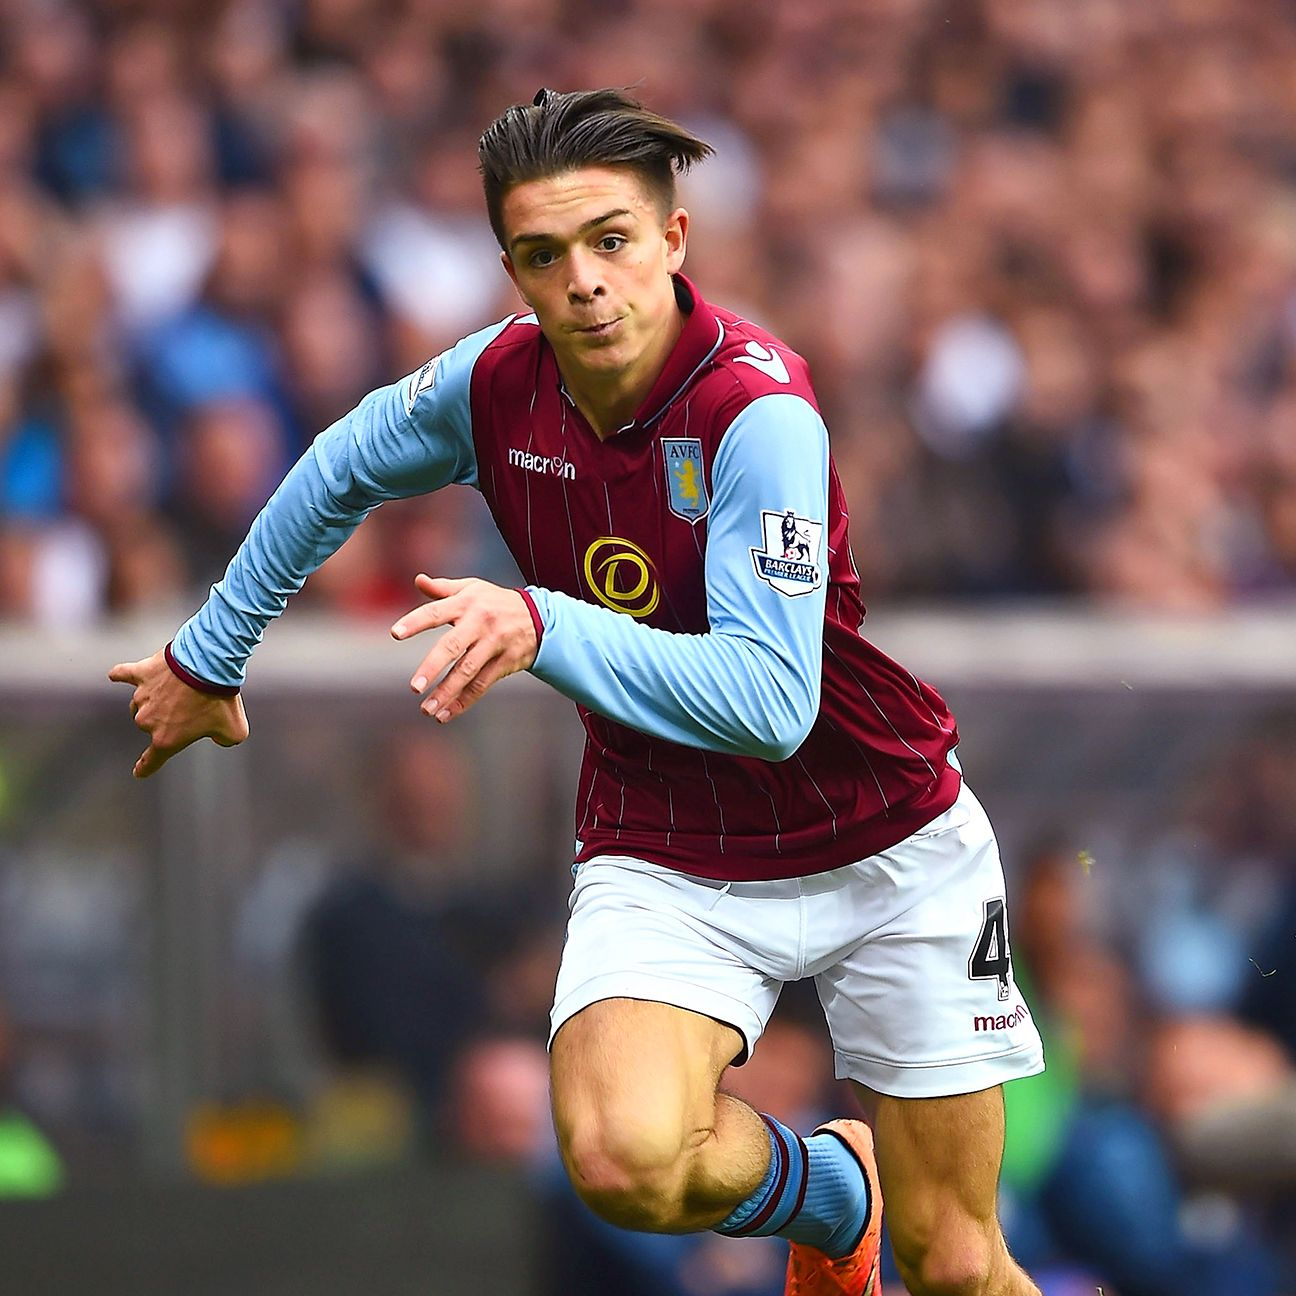 Academy product Jack Grealish could be just the spark for Aston Villa in 2015.